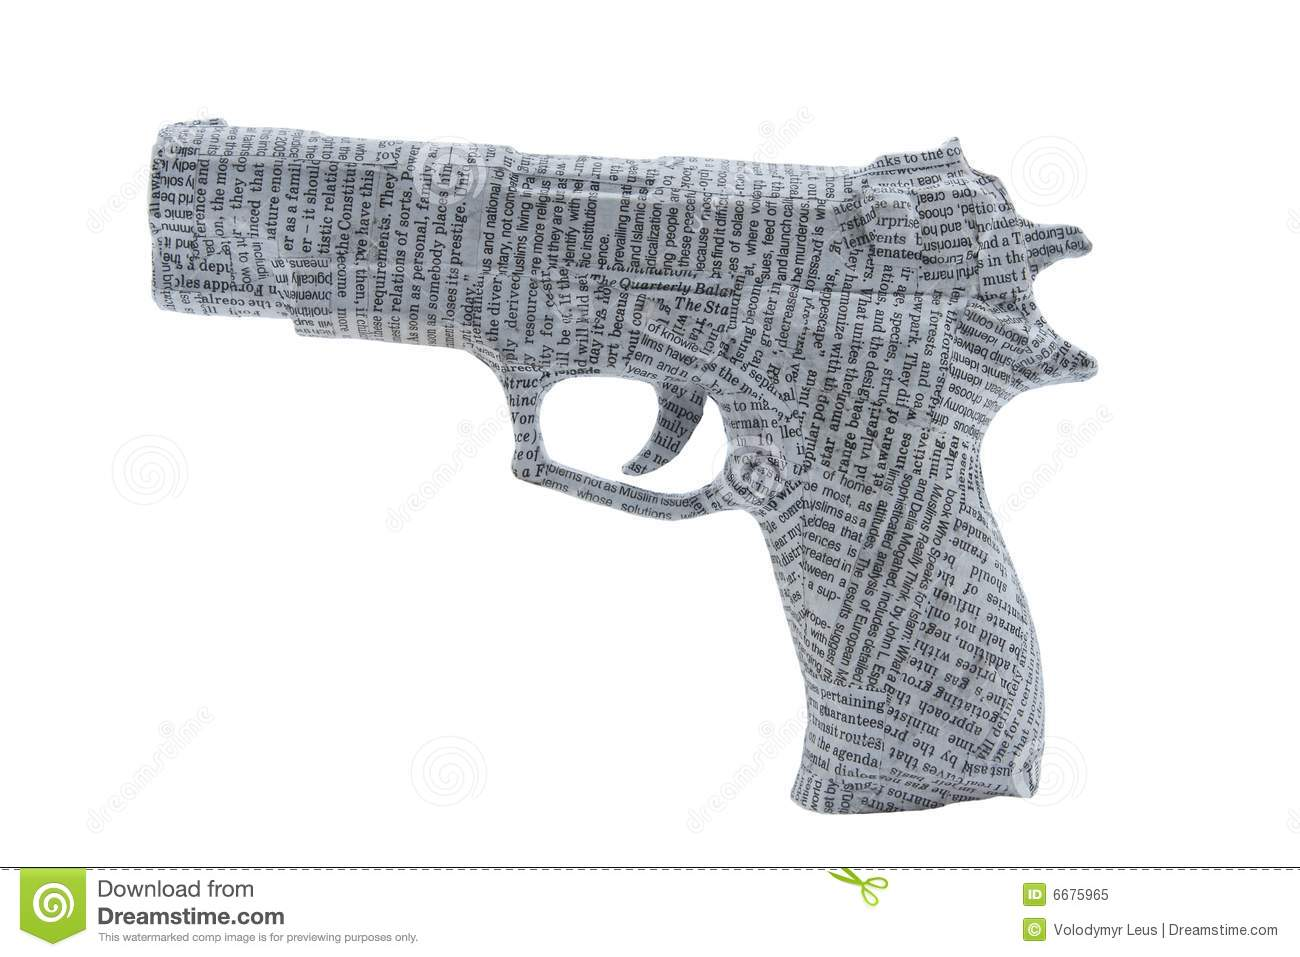 Handgun tightyl wrapped in newspaper